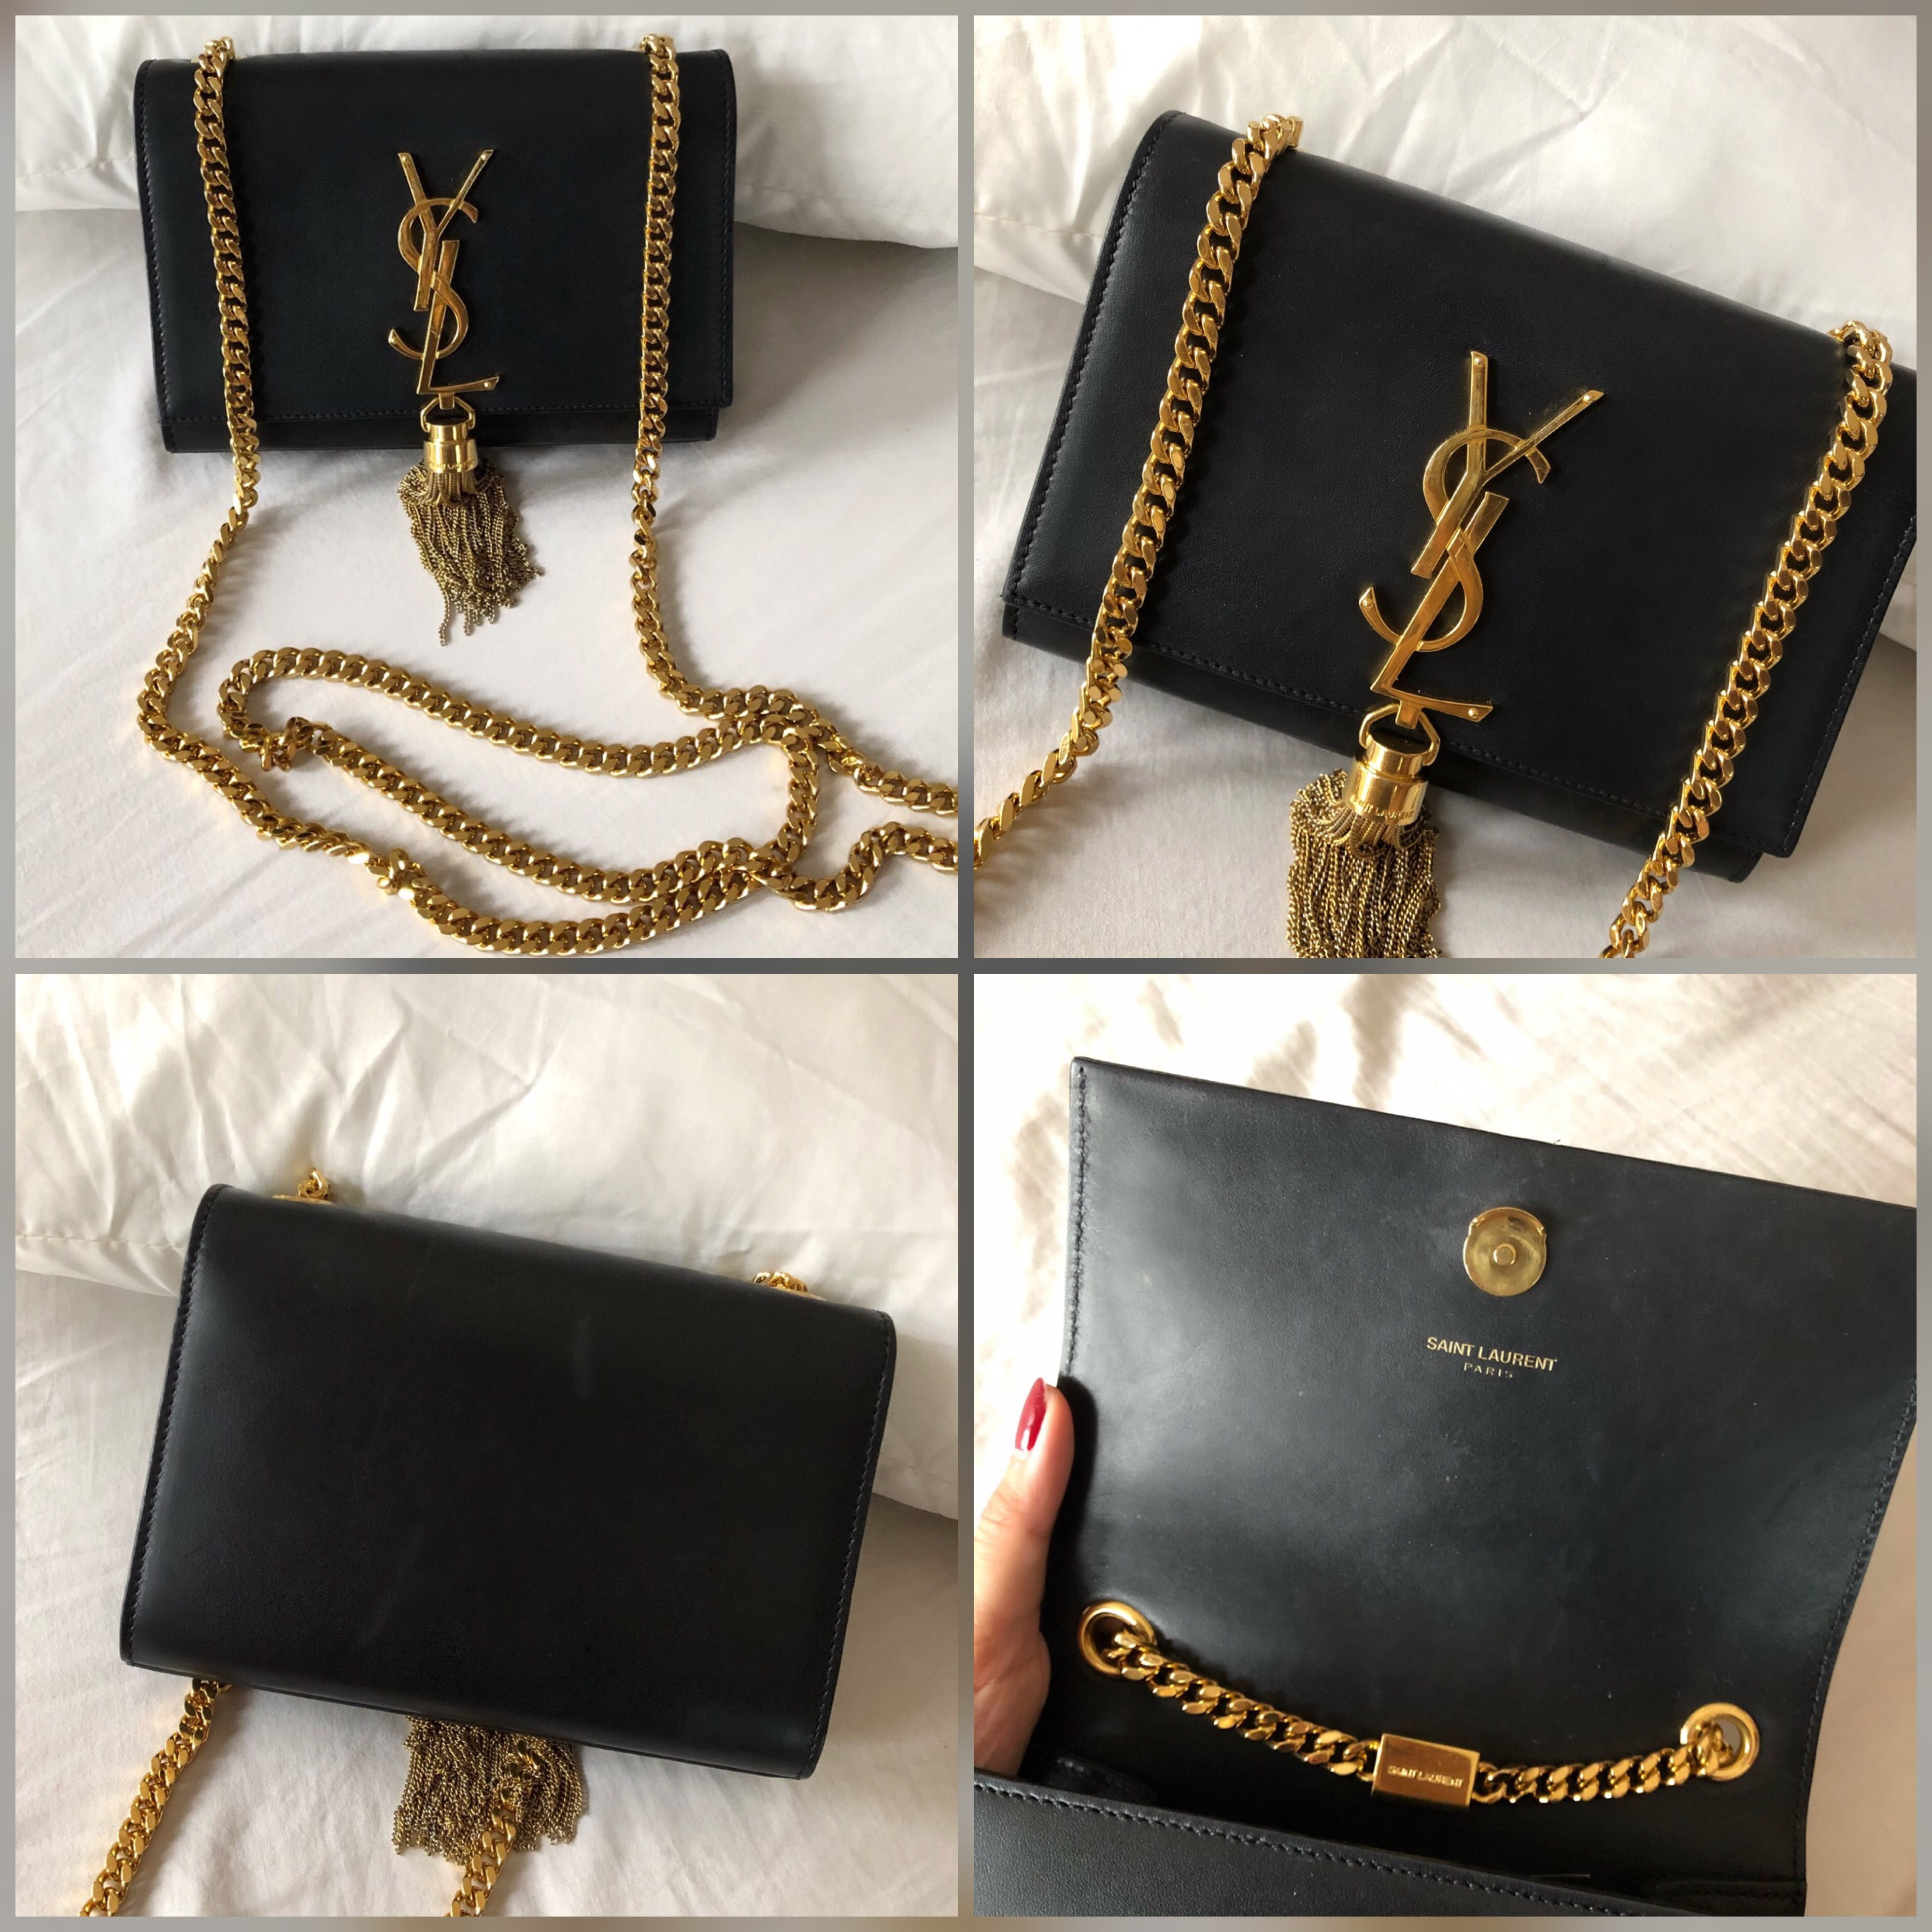 e7a535053ba0 Saint Laurent Kate Tassel Small Smooth leather Bag only Good condition but  has signs of usage as per photos. Not for fussy buyers Selling Price :  SGD1330 ...